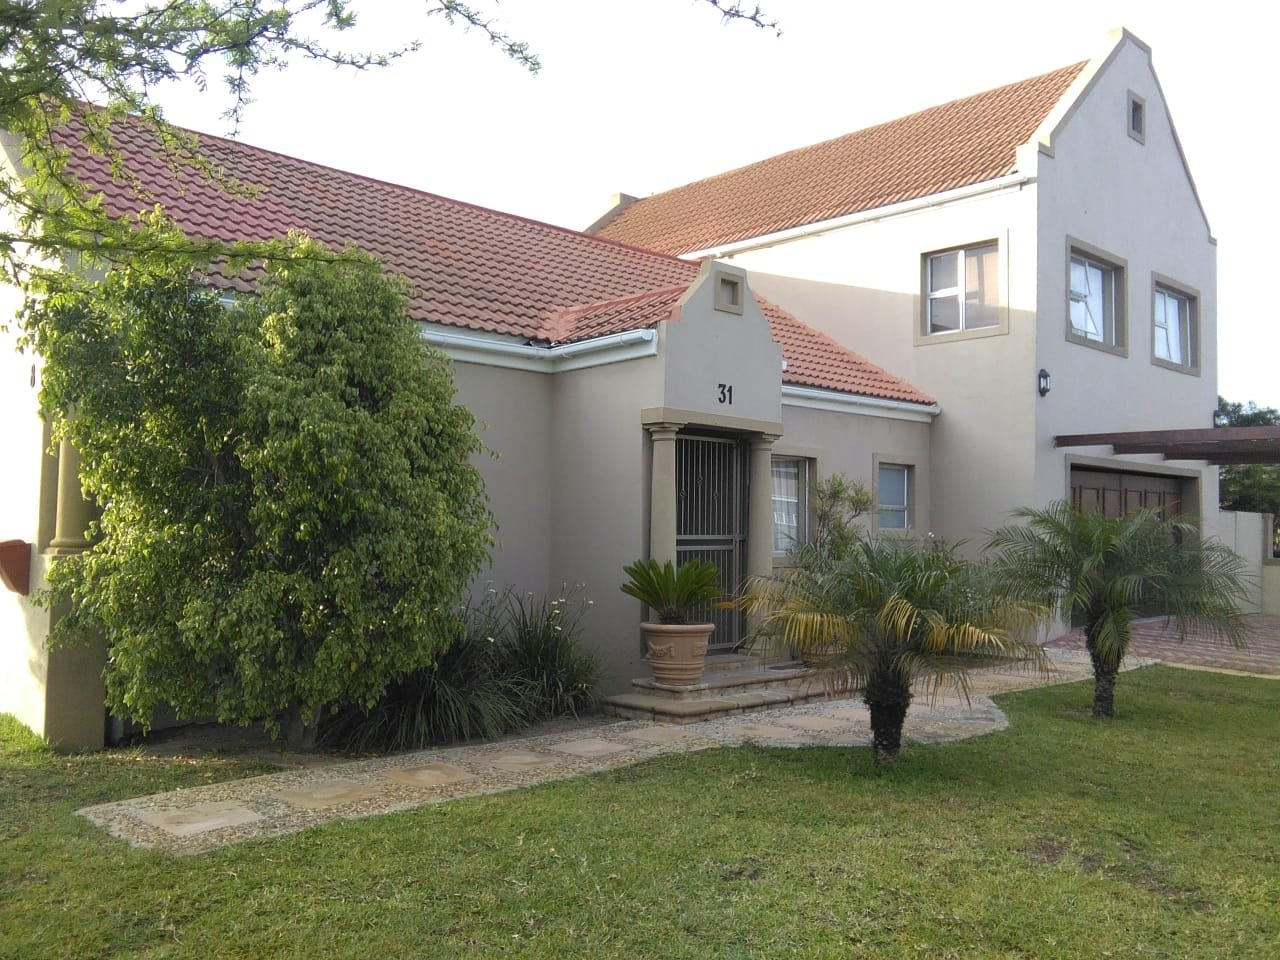 Eikenbosch property for sale. Ref No: 13681621. Picture no 1